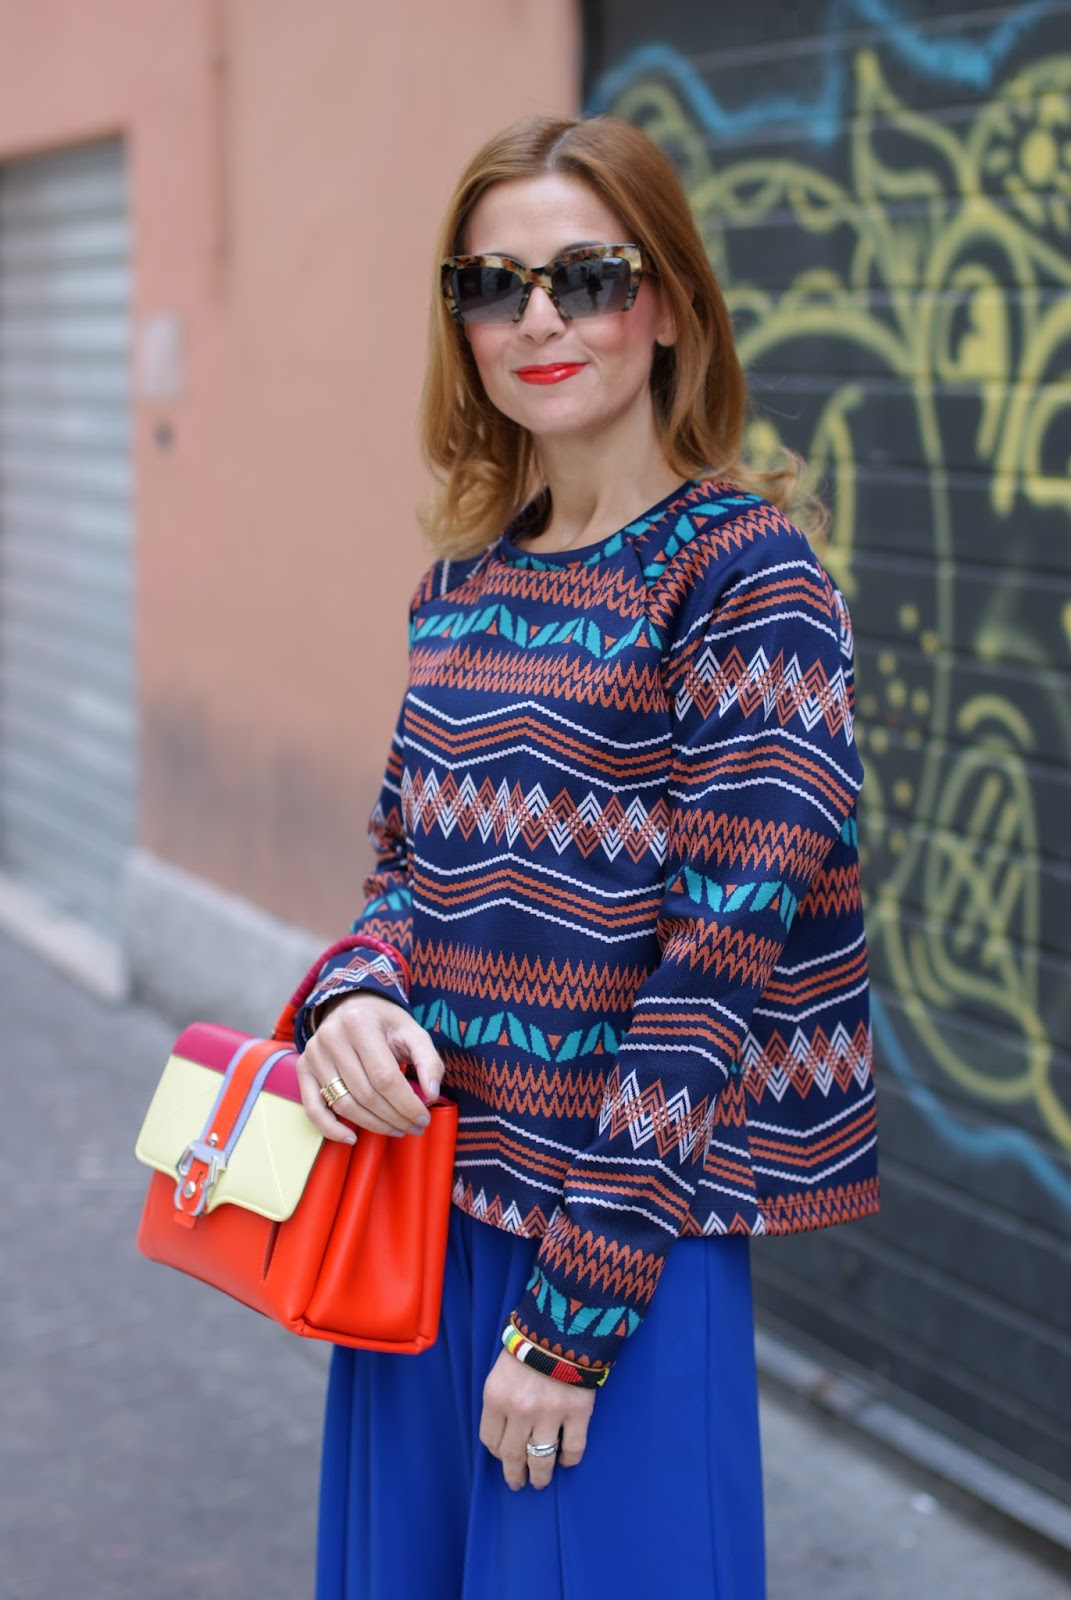 stylish and Colorful outfit with wide leg palazzo pants and Paula Cademartori Petite Faye bag on Fashion and Cookies fashion blog, fashion blogger style